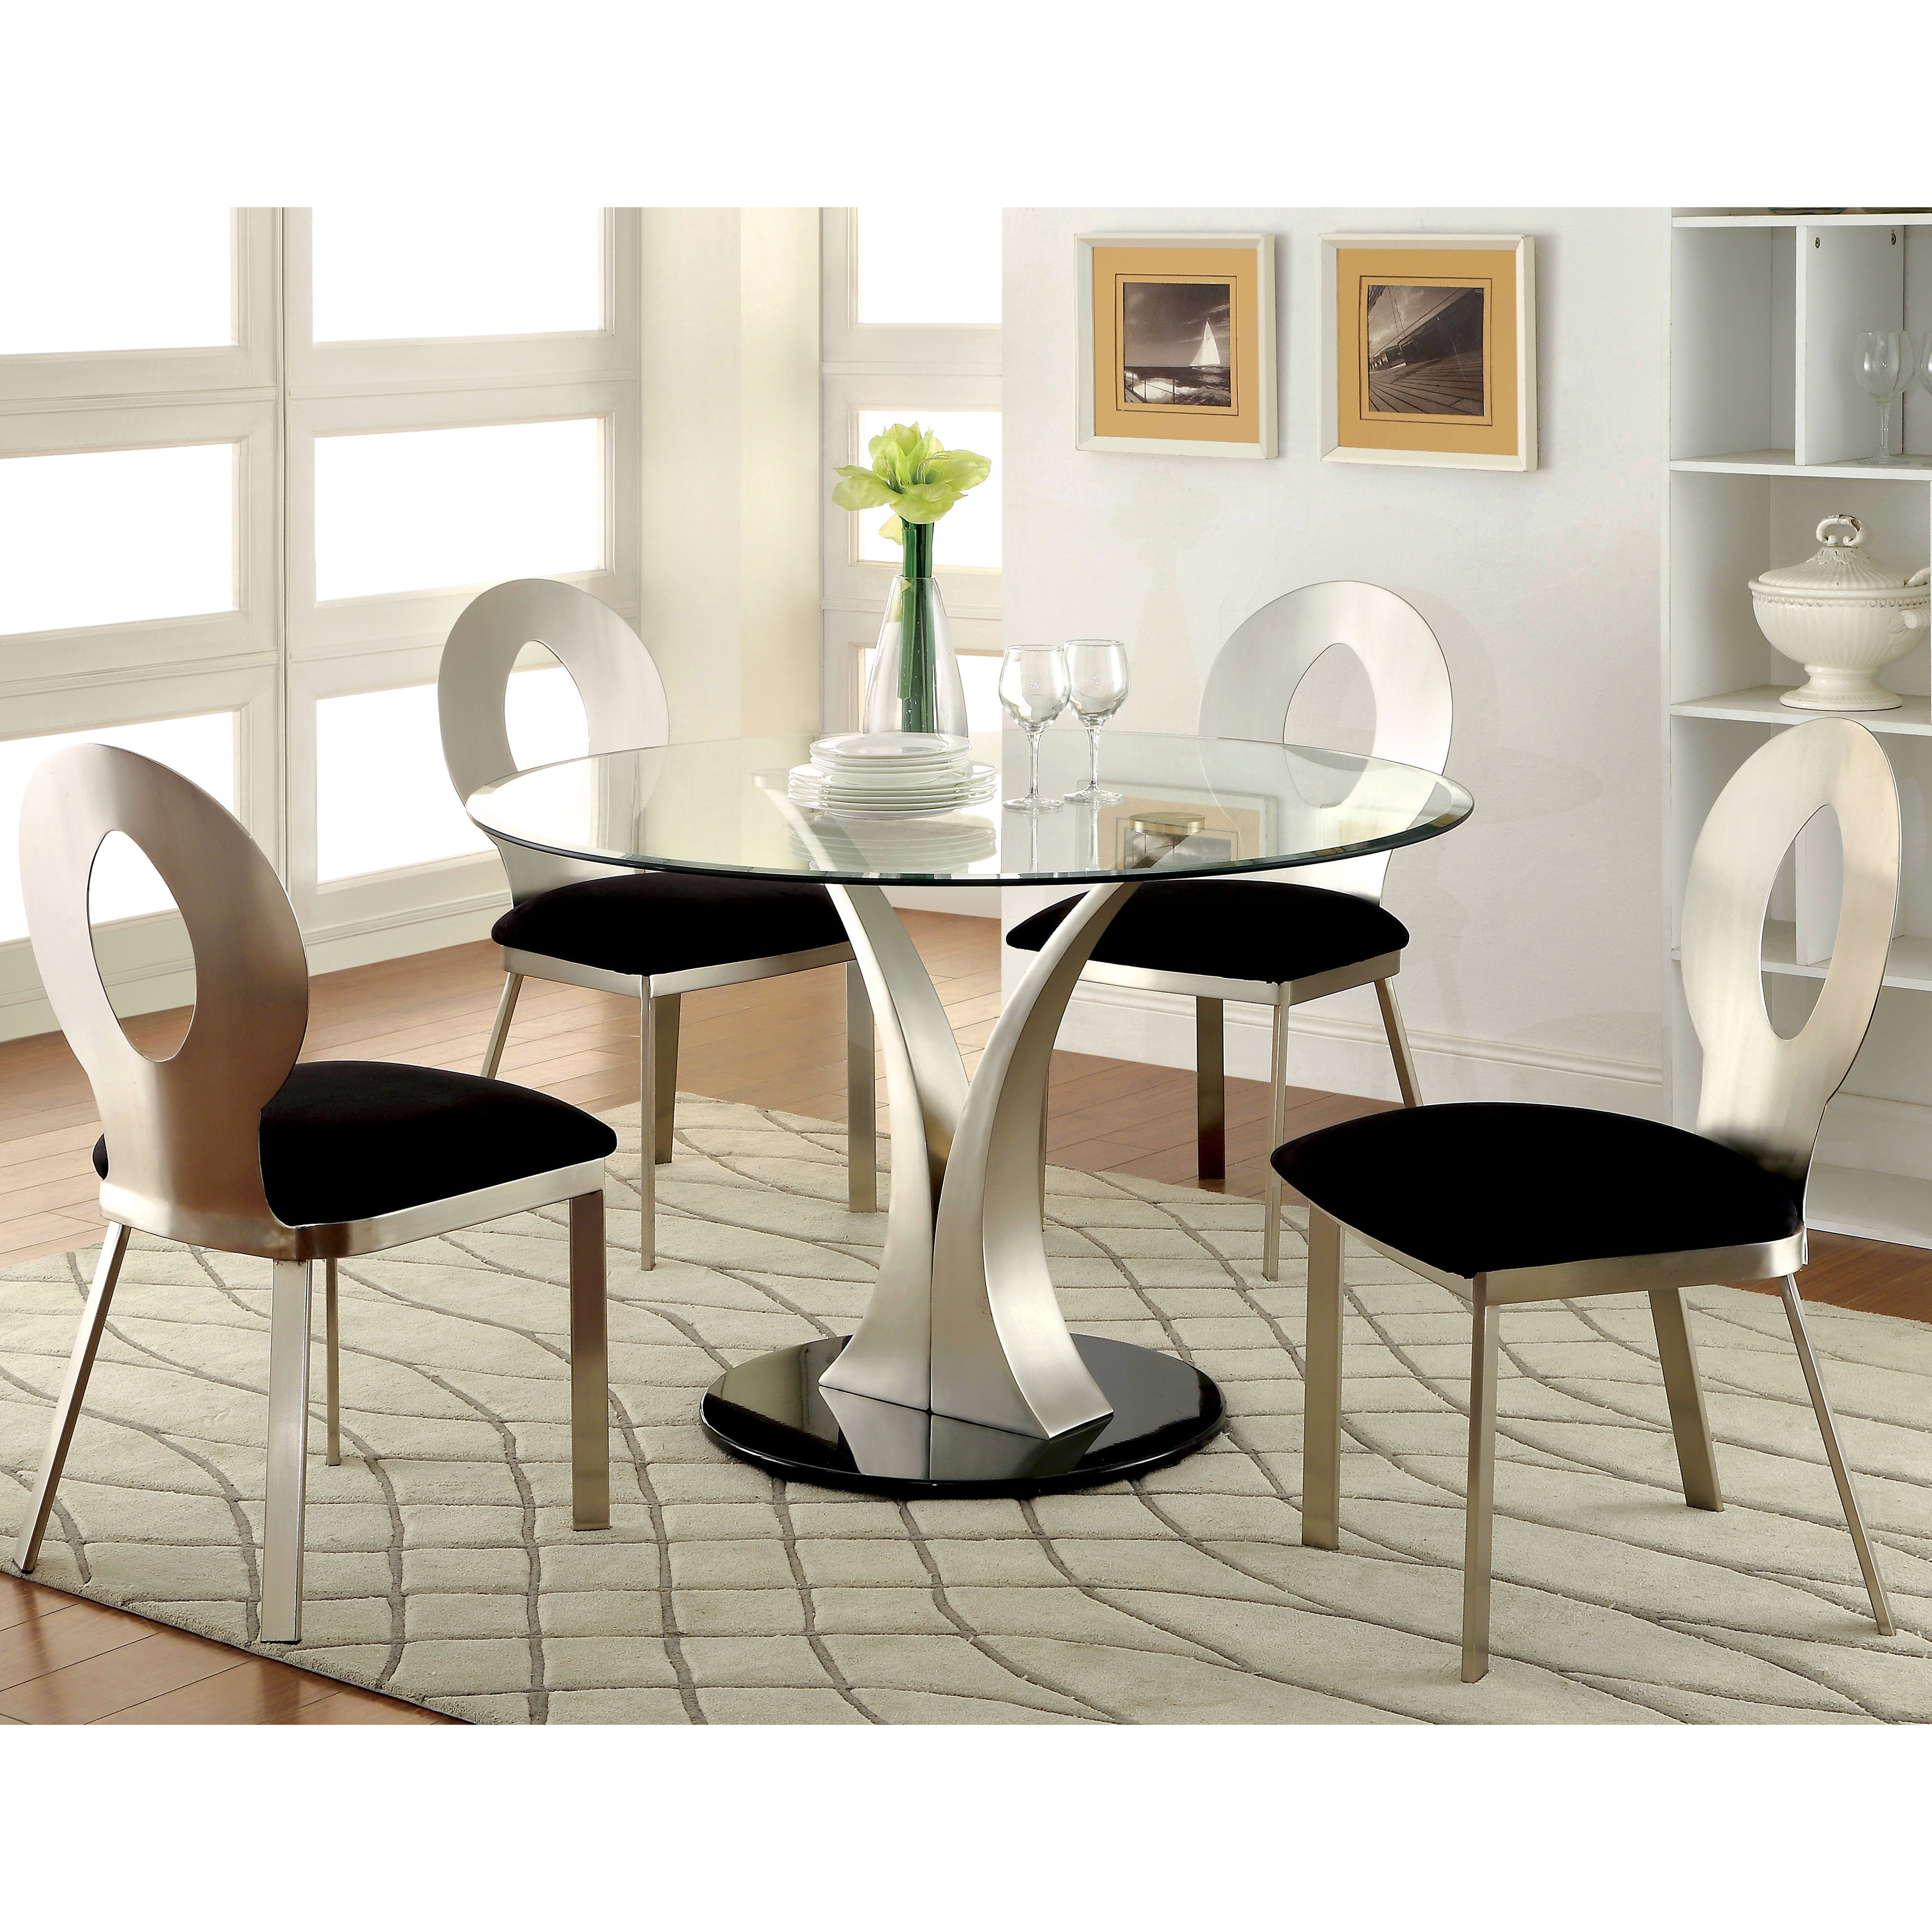 Furniture Of America Sculpture III Contemporary 5 Piece Round Dining Set    Silver